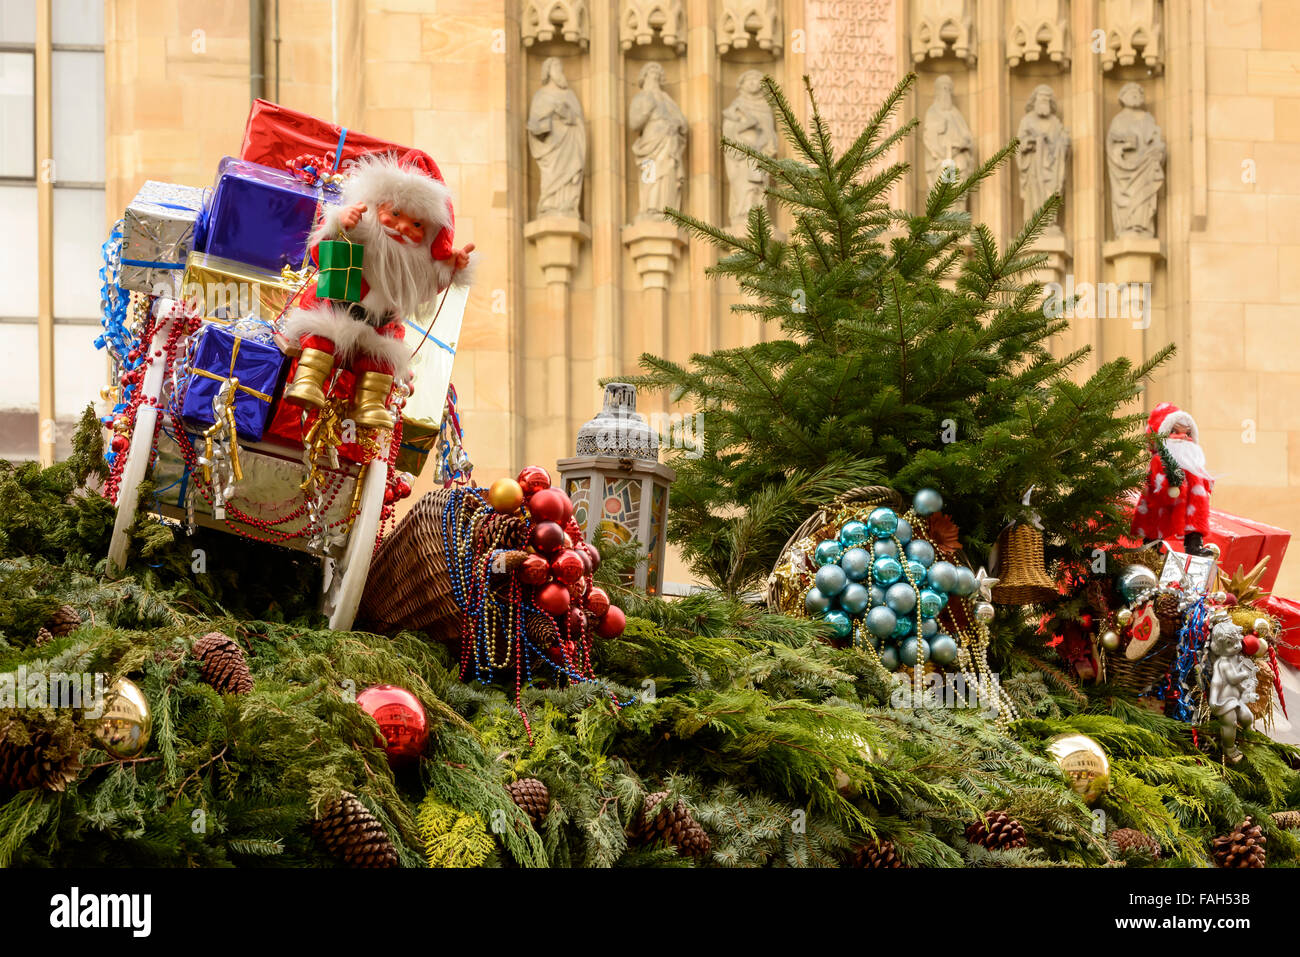 glass balls and a Santa puppet between spruce branches on roof of Christmas market stall,  Stuttgart, Germany Stock Photo